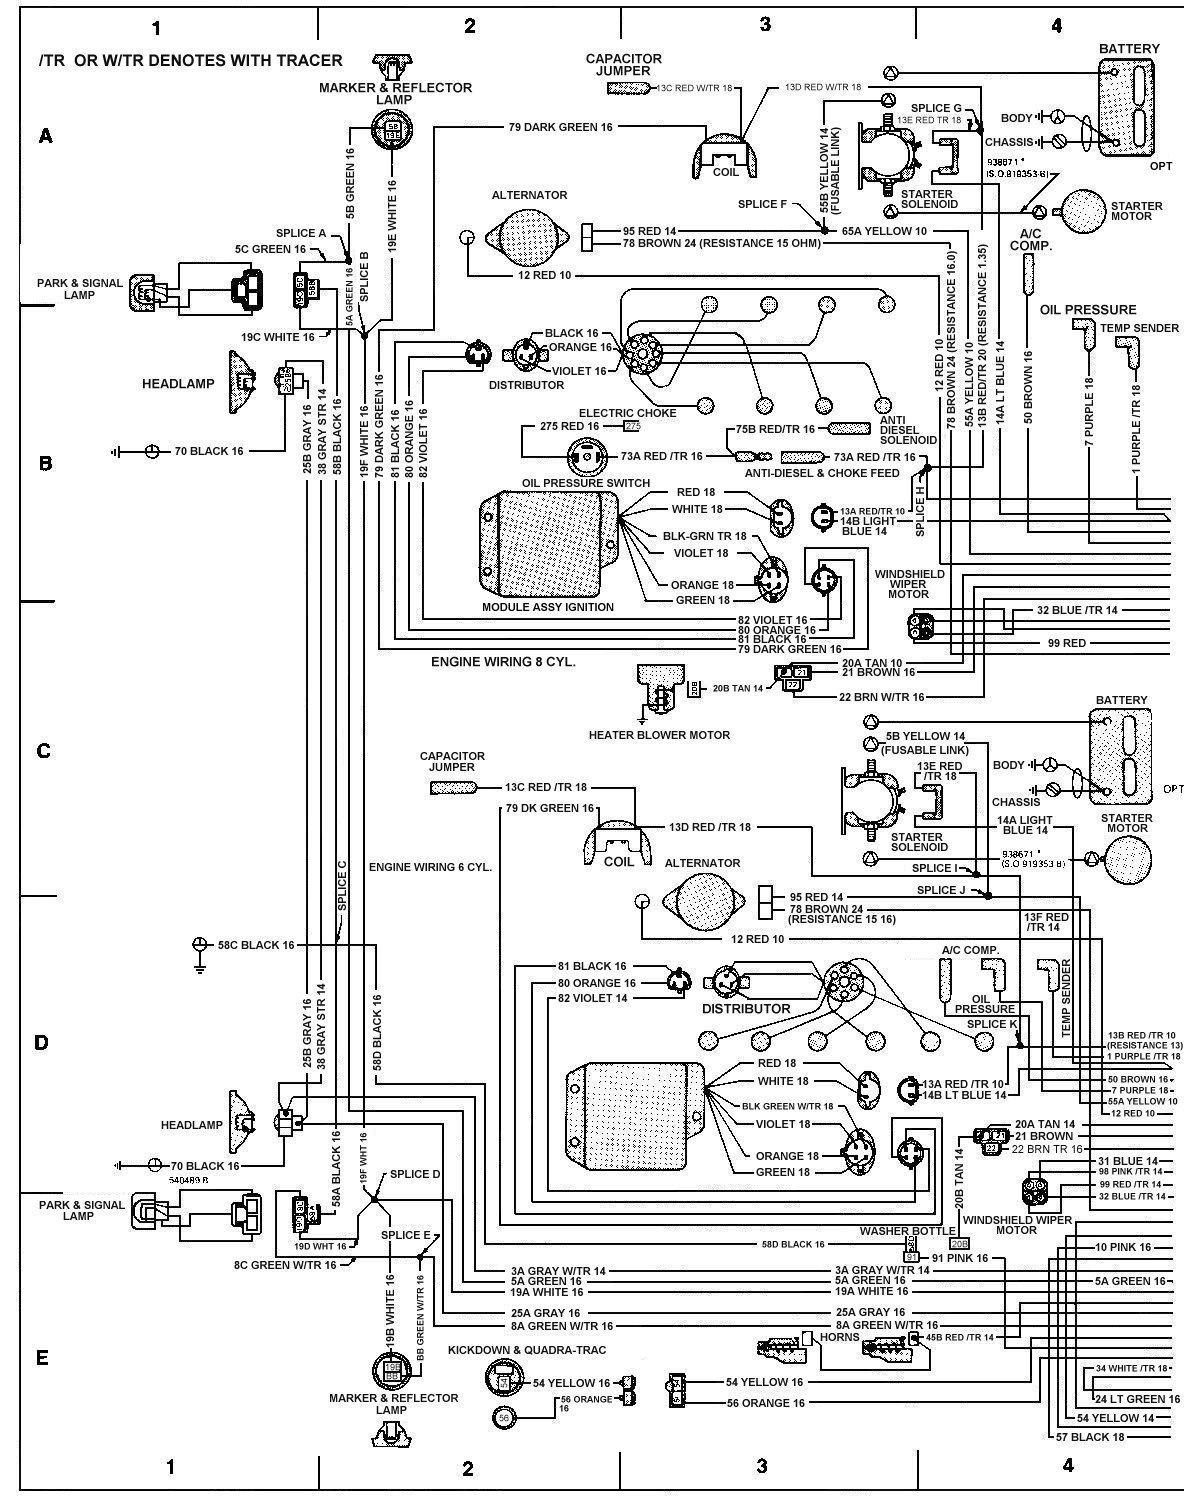 DOWNLOAD [SCHEMA] Jeep J10 Wiring Diagrams Full Quality